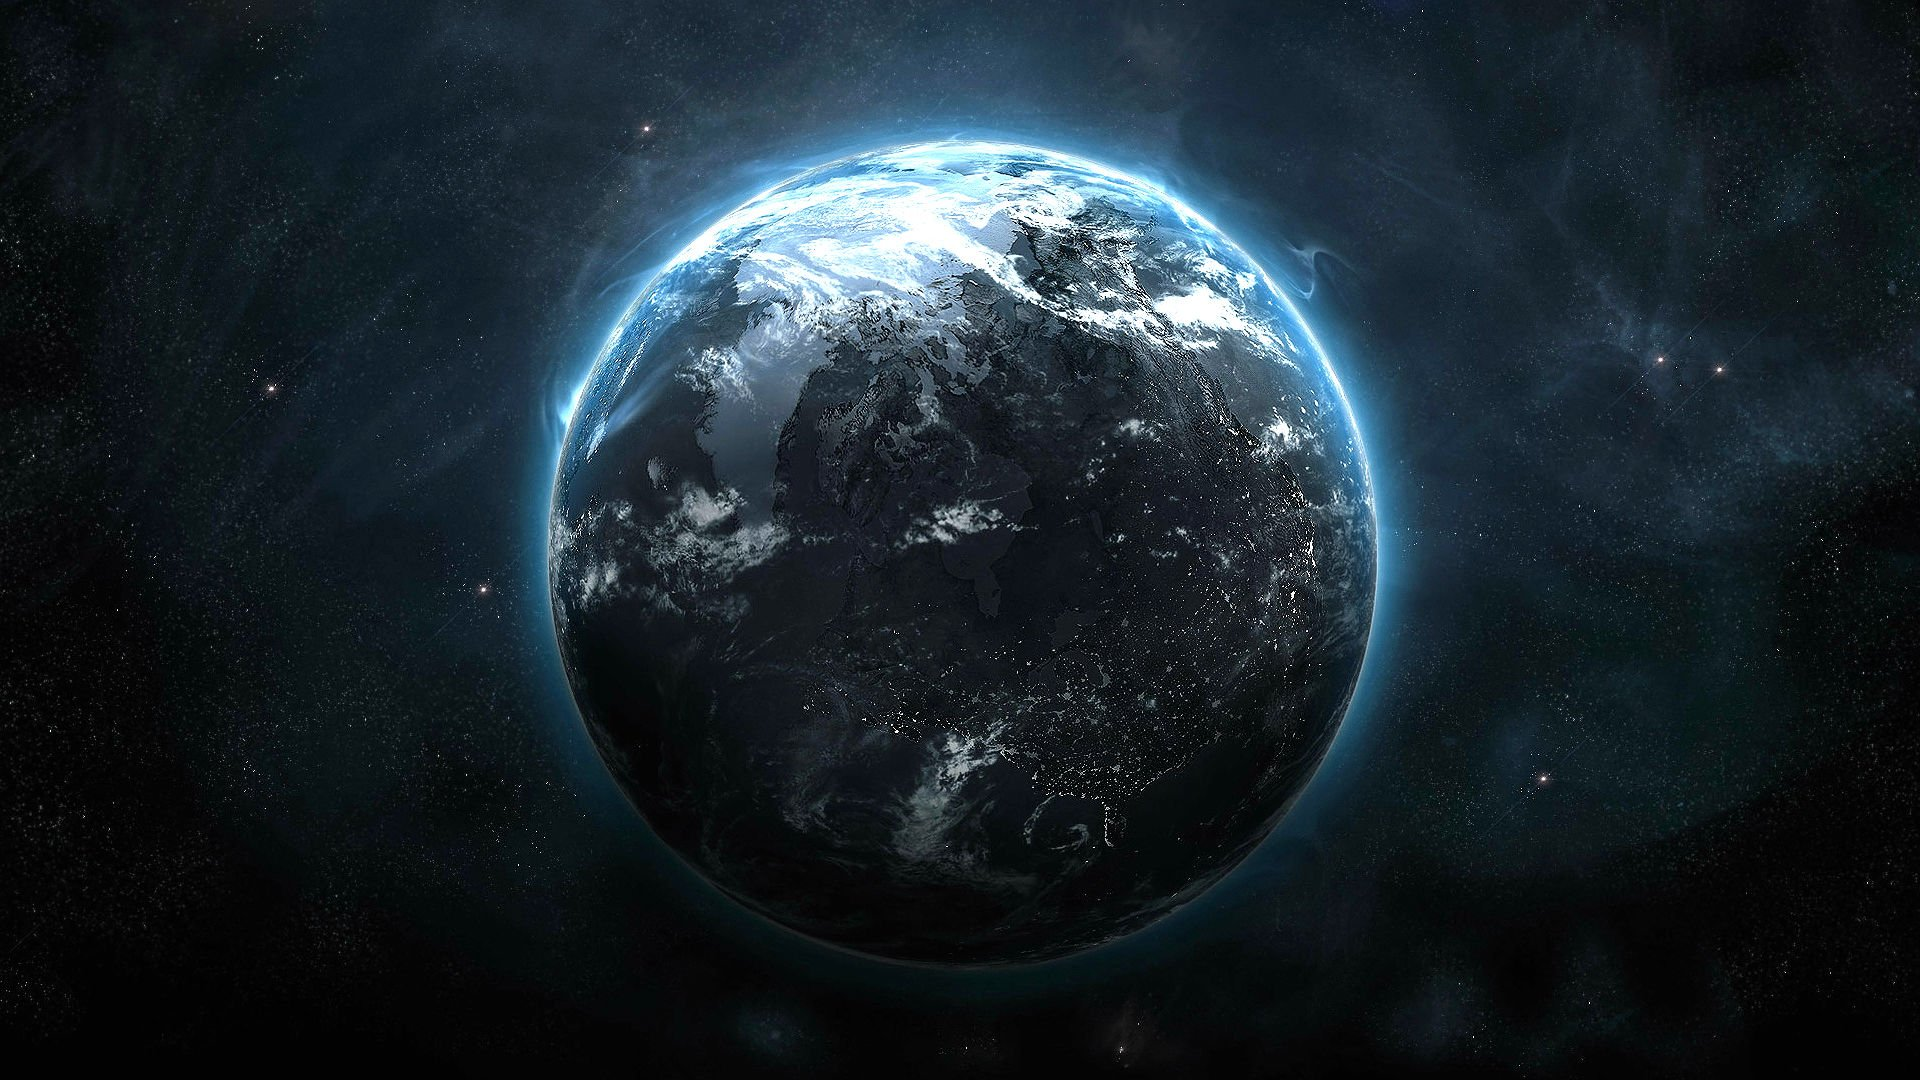 Planet Earth From Space Wallpaper: PROMETHEUS Adventure Mystery Sci-fi Futuristic Planet